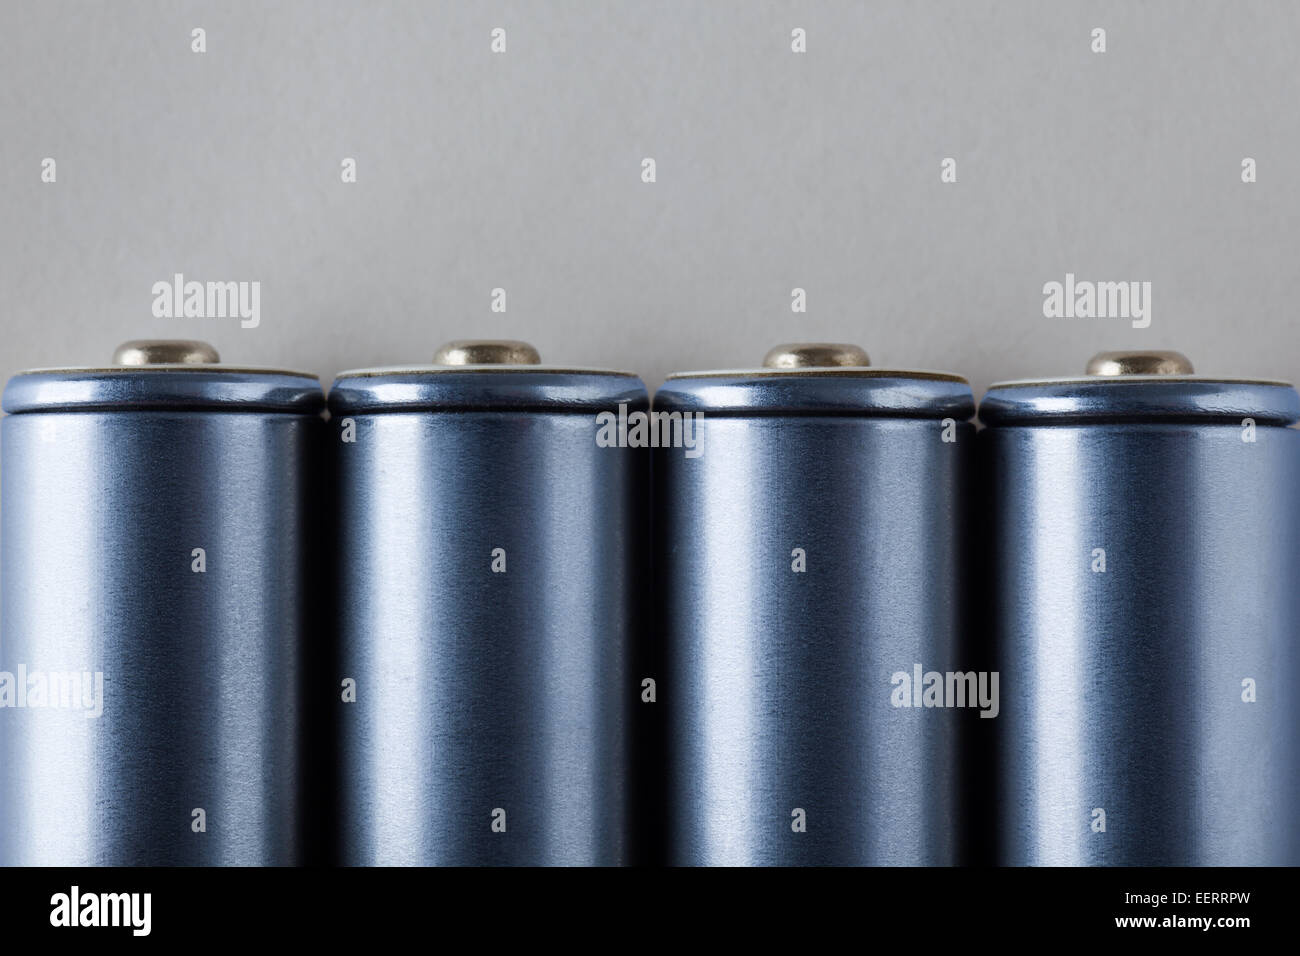 Four AA Blue Batteries on Gray Background - Stock Image